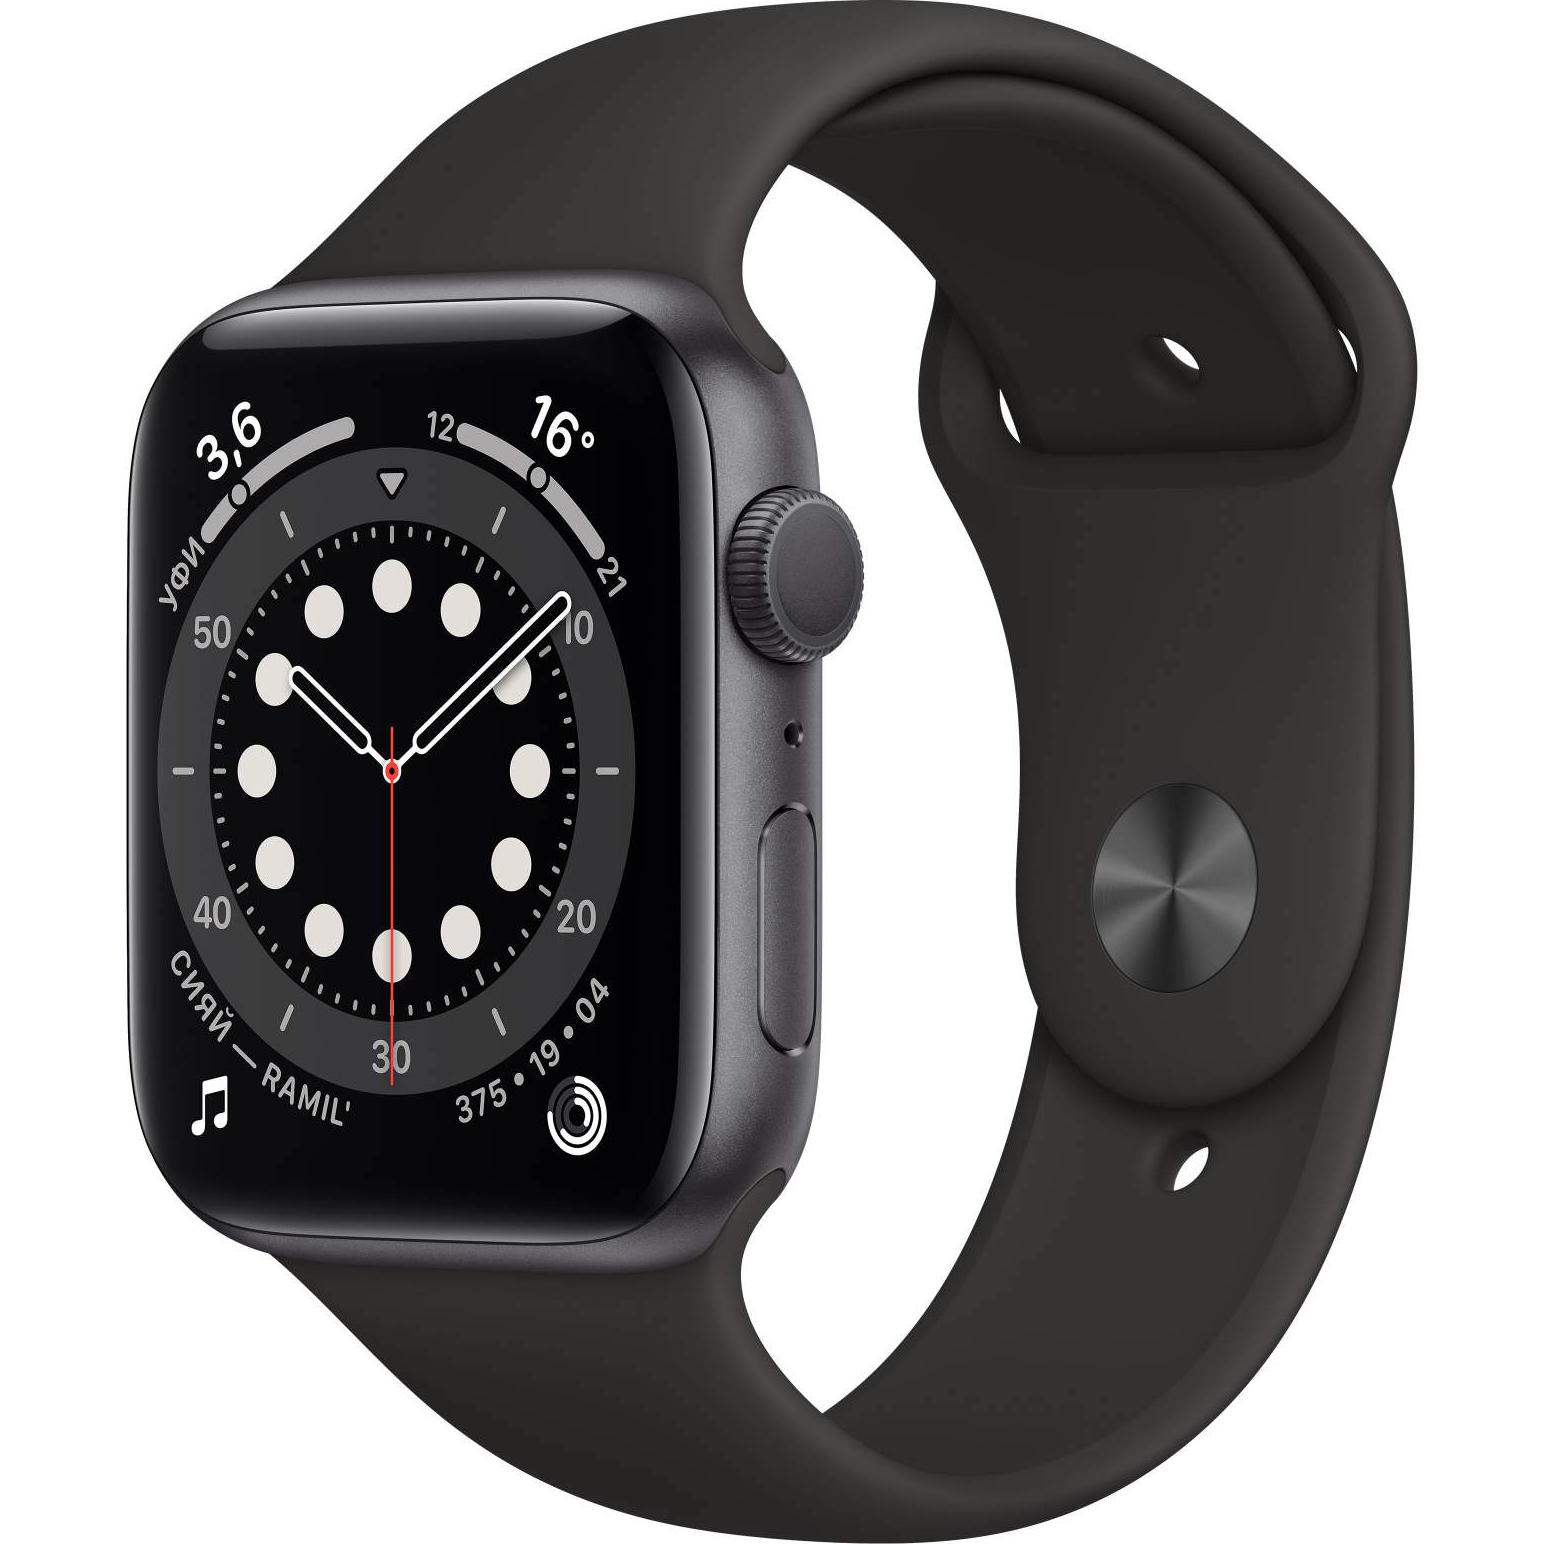 Смарт-часы Apple Watch 6 GPS 40мм Space Gray MG133RU/A смарт часы apple watch series 6 40 мм золотой mg123ru a